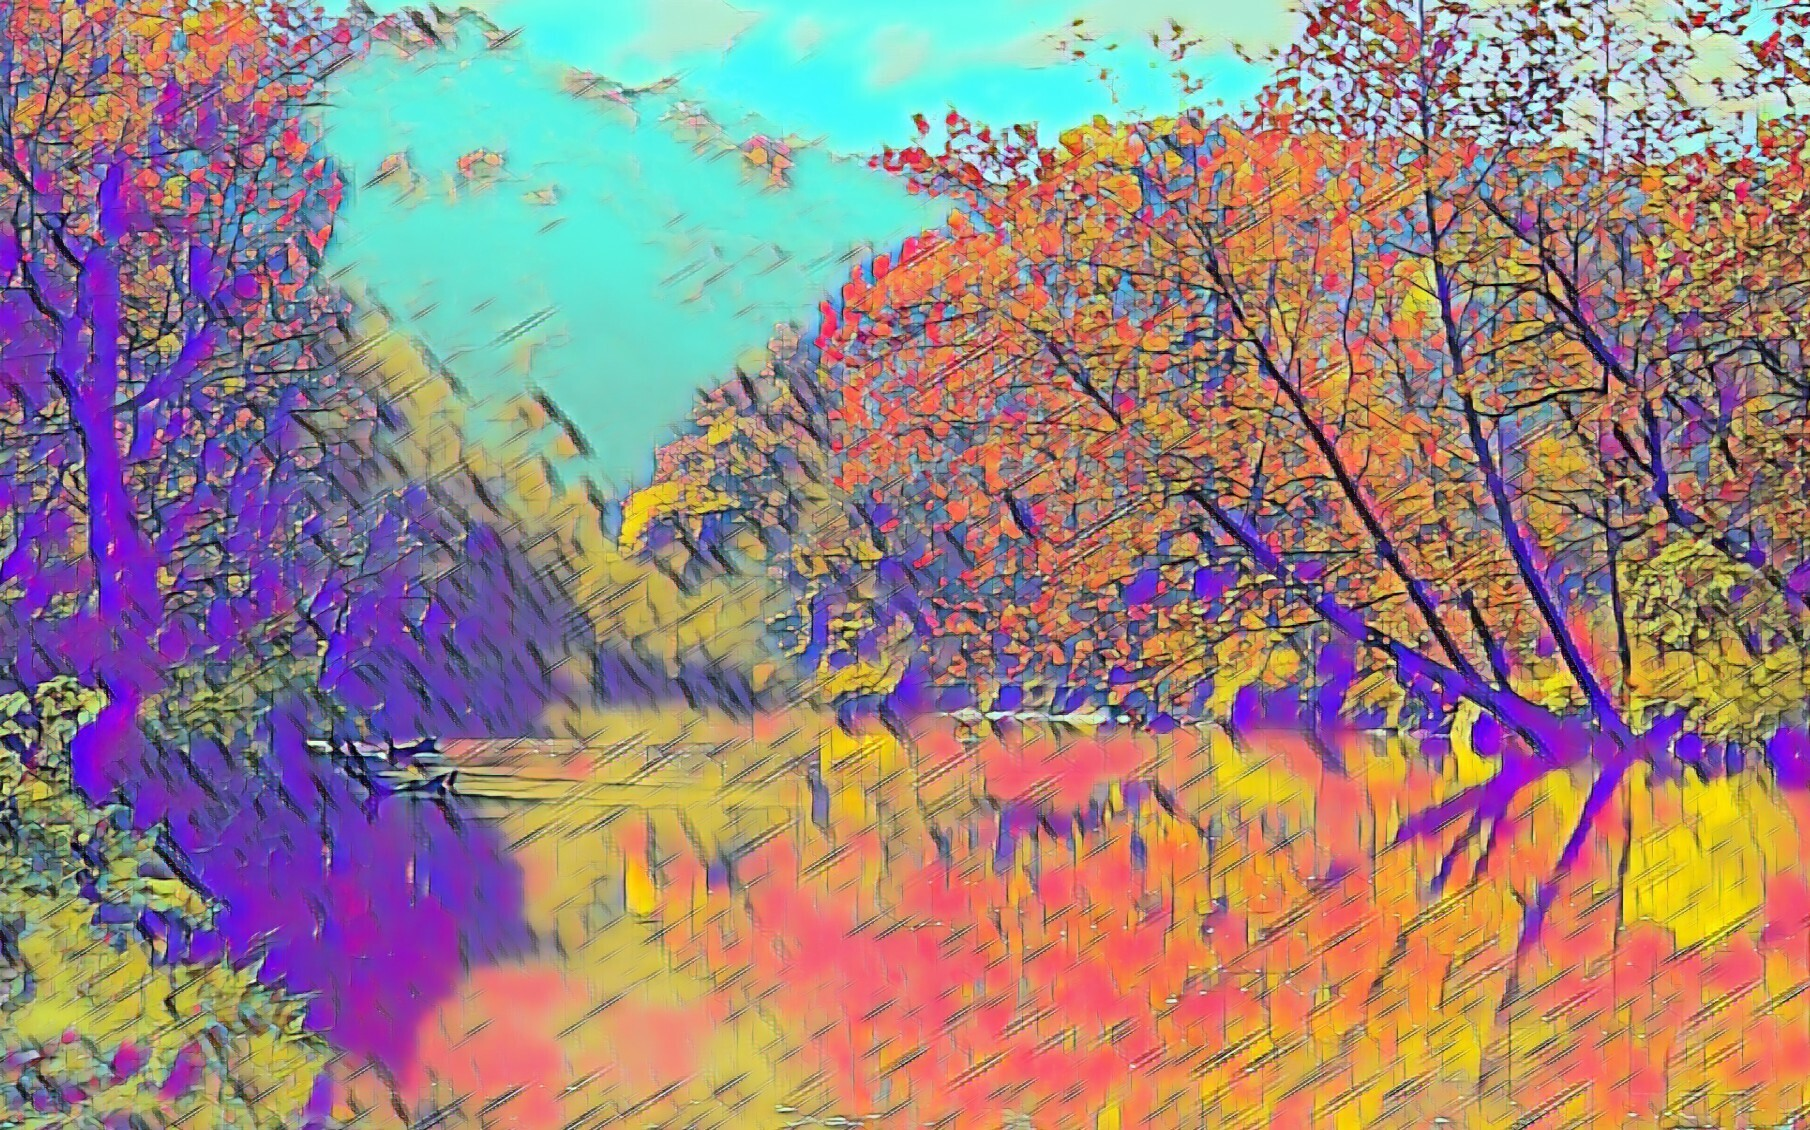 Neural Filters for Photoshop(ps2021AI智能神经网路滤镜)